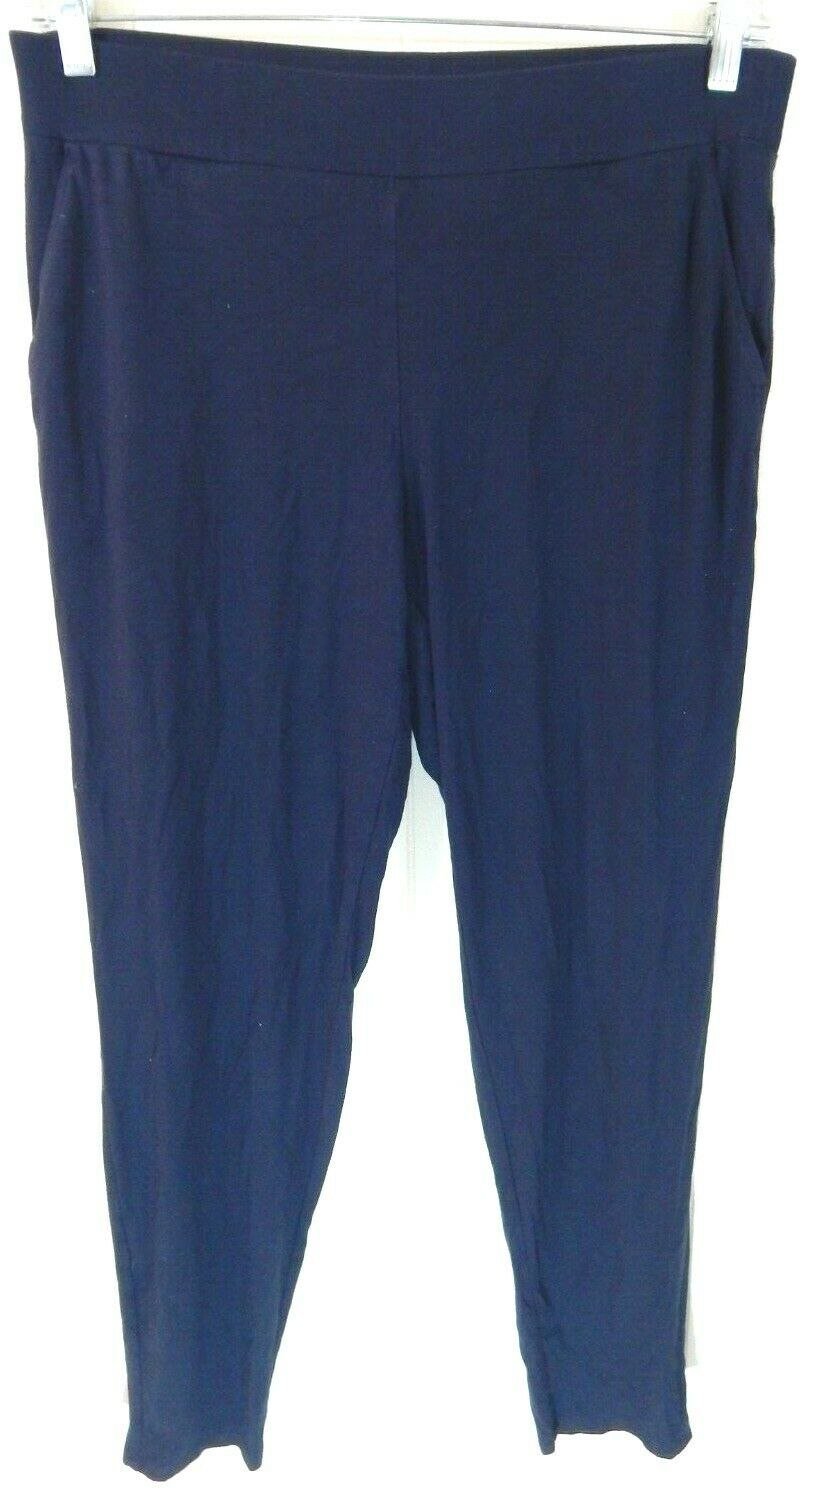 Eileen Fisher Womens Small Lounge Pants Navy Skinny Lightweight Knit Pull On EUC